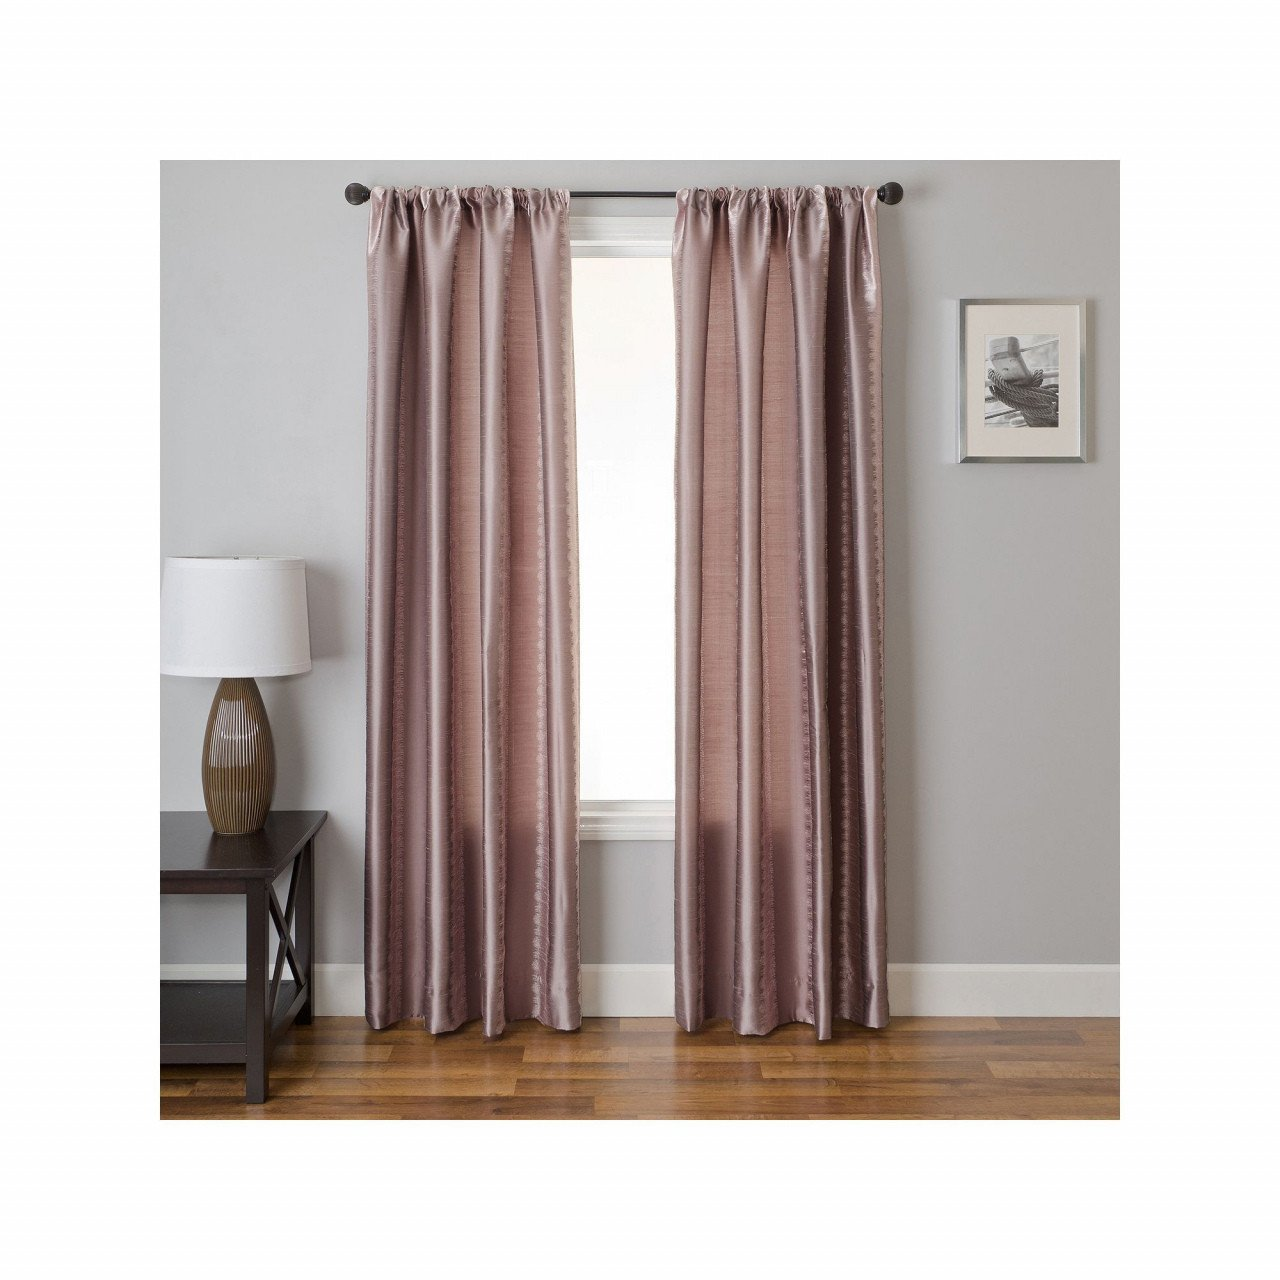 Bedroom Curtains at Walmart New Coral Bedroom Curtains — Procura Home Blog